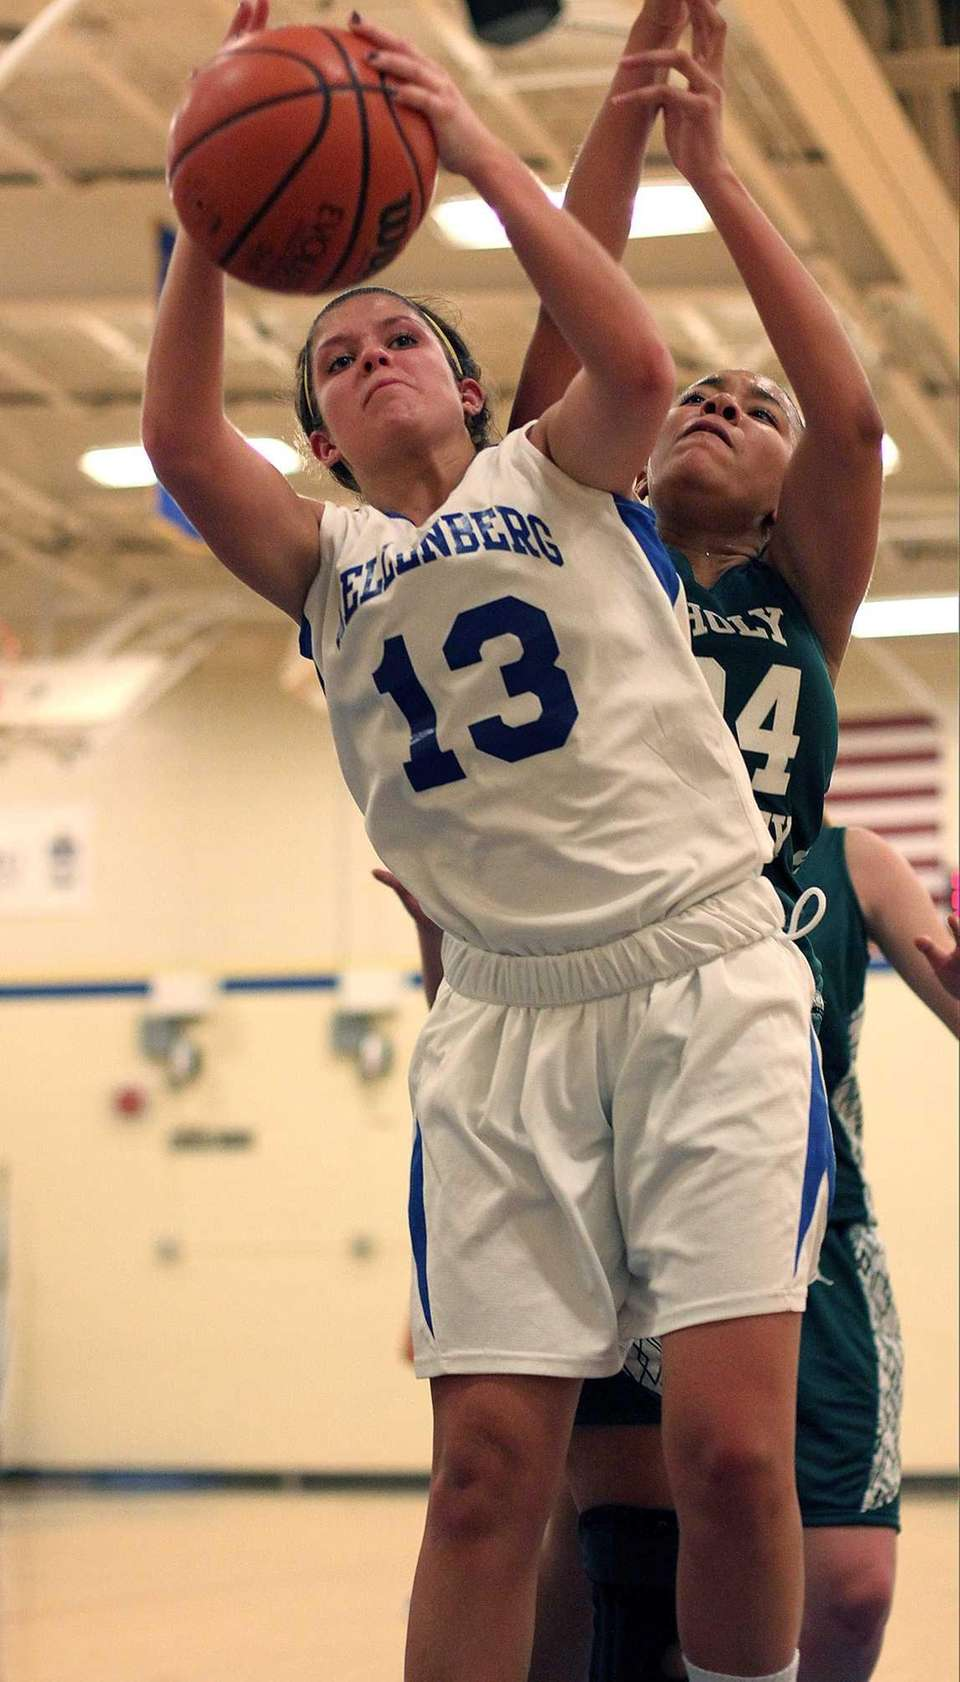 Kellenberg's Kaitlyn Stackpole goes for the rebound in